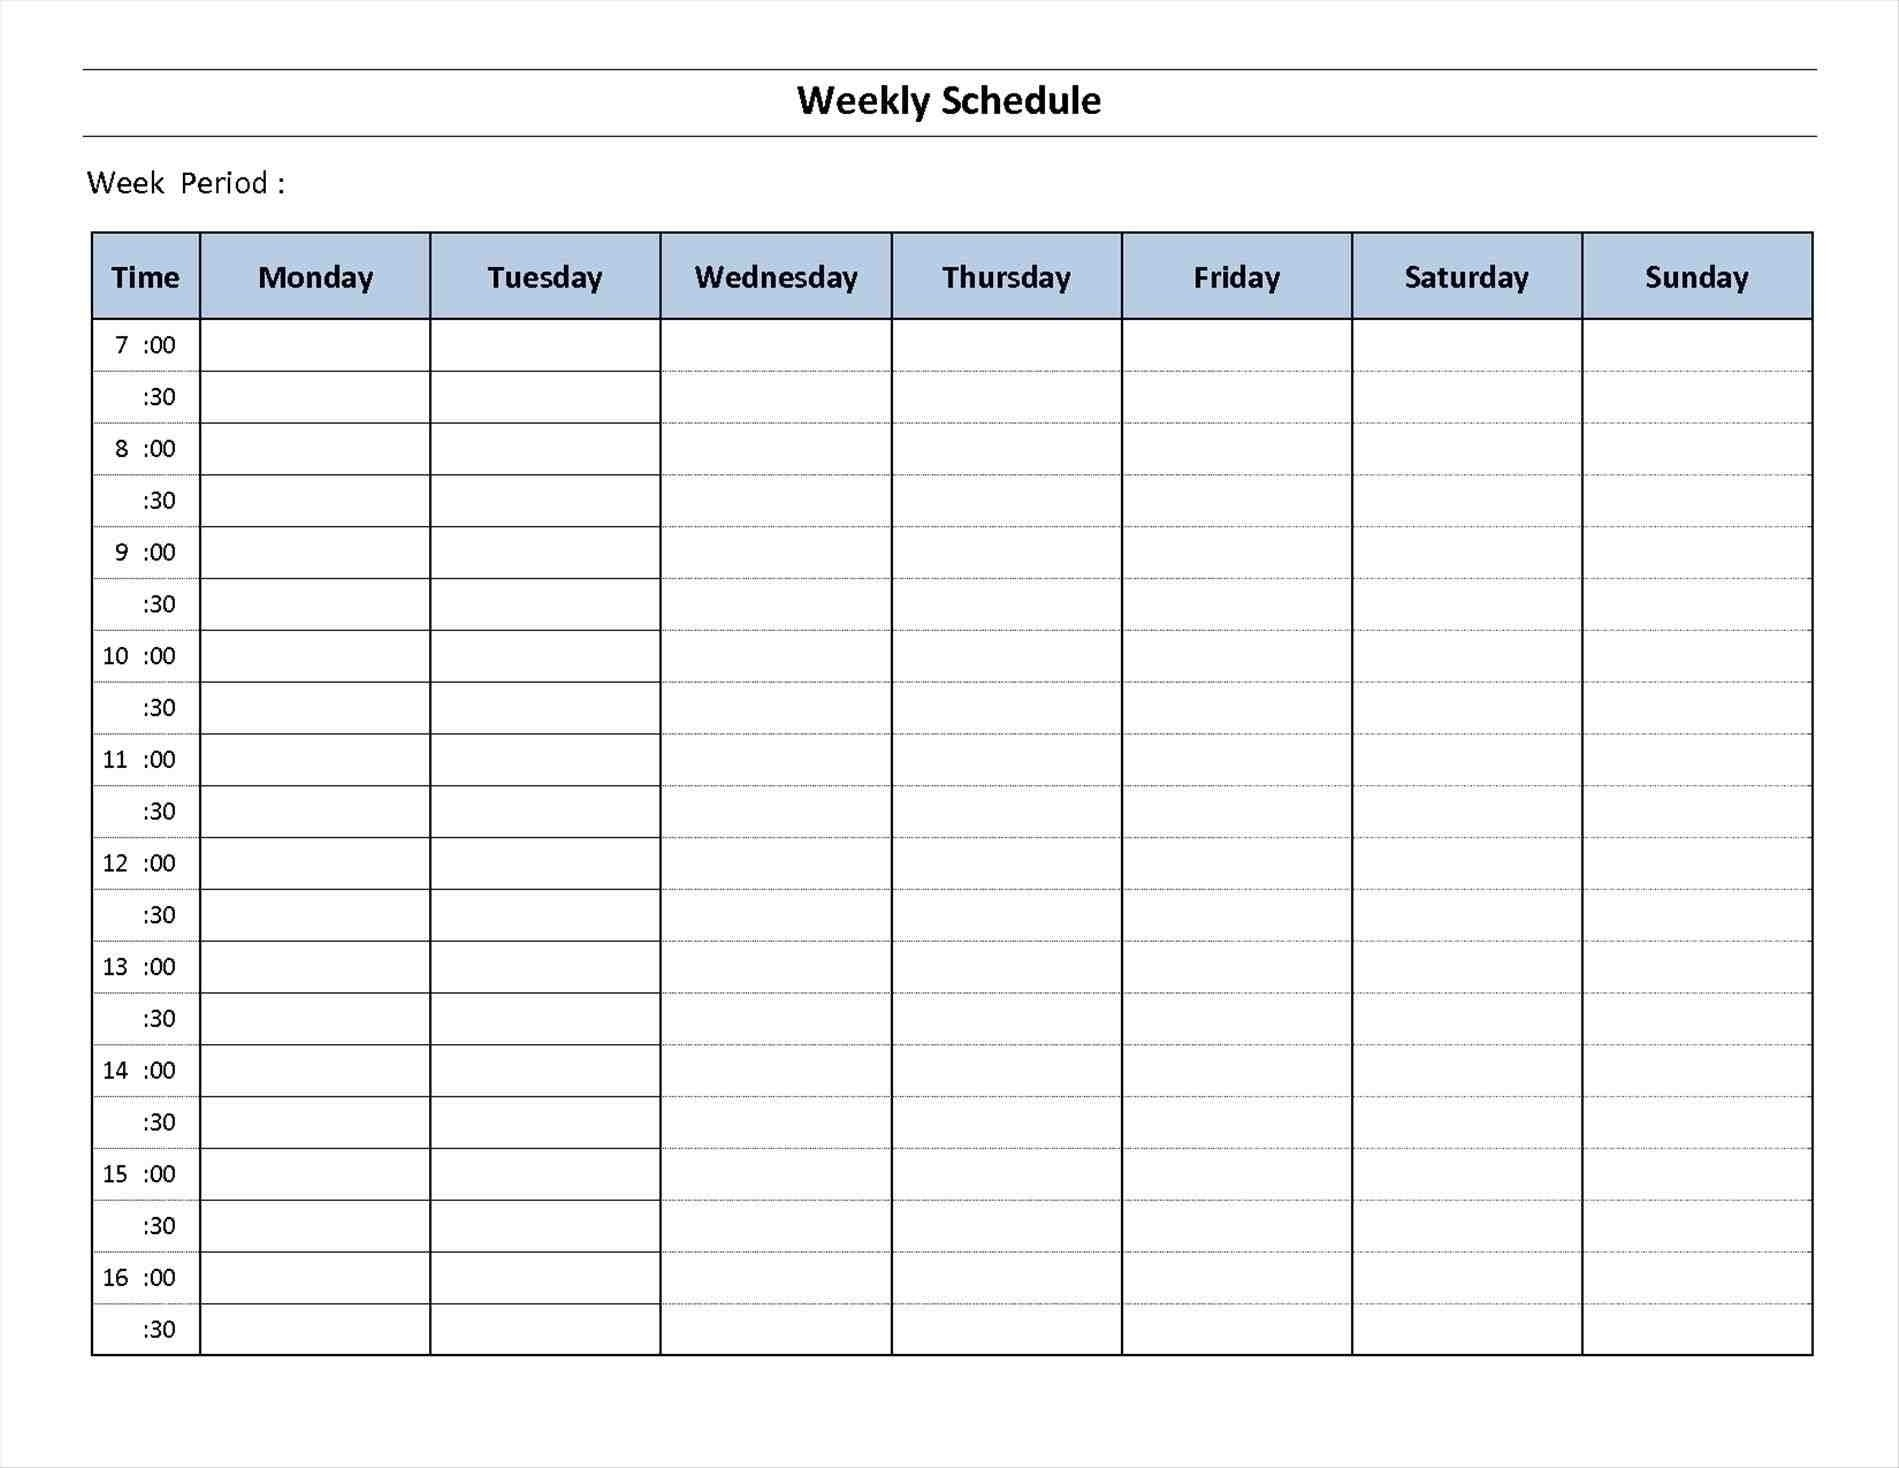 Day Week Calendar Emplate Printable Seven Schedule Appointment | Smorad pertaining to Printable Seven Day Calendar Print Out